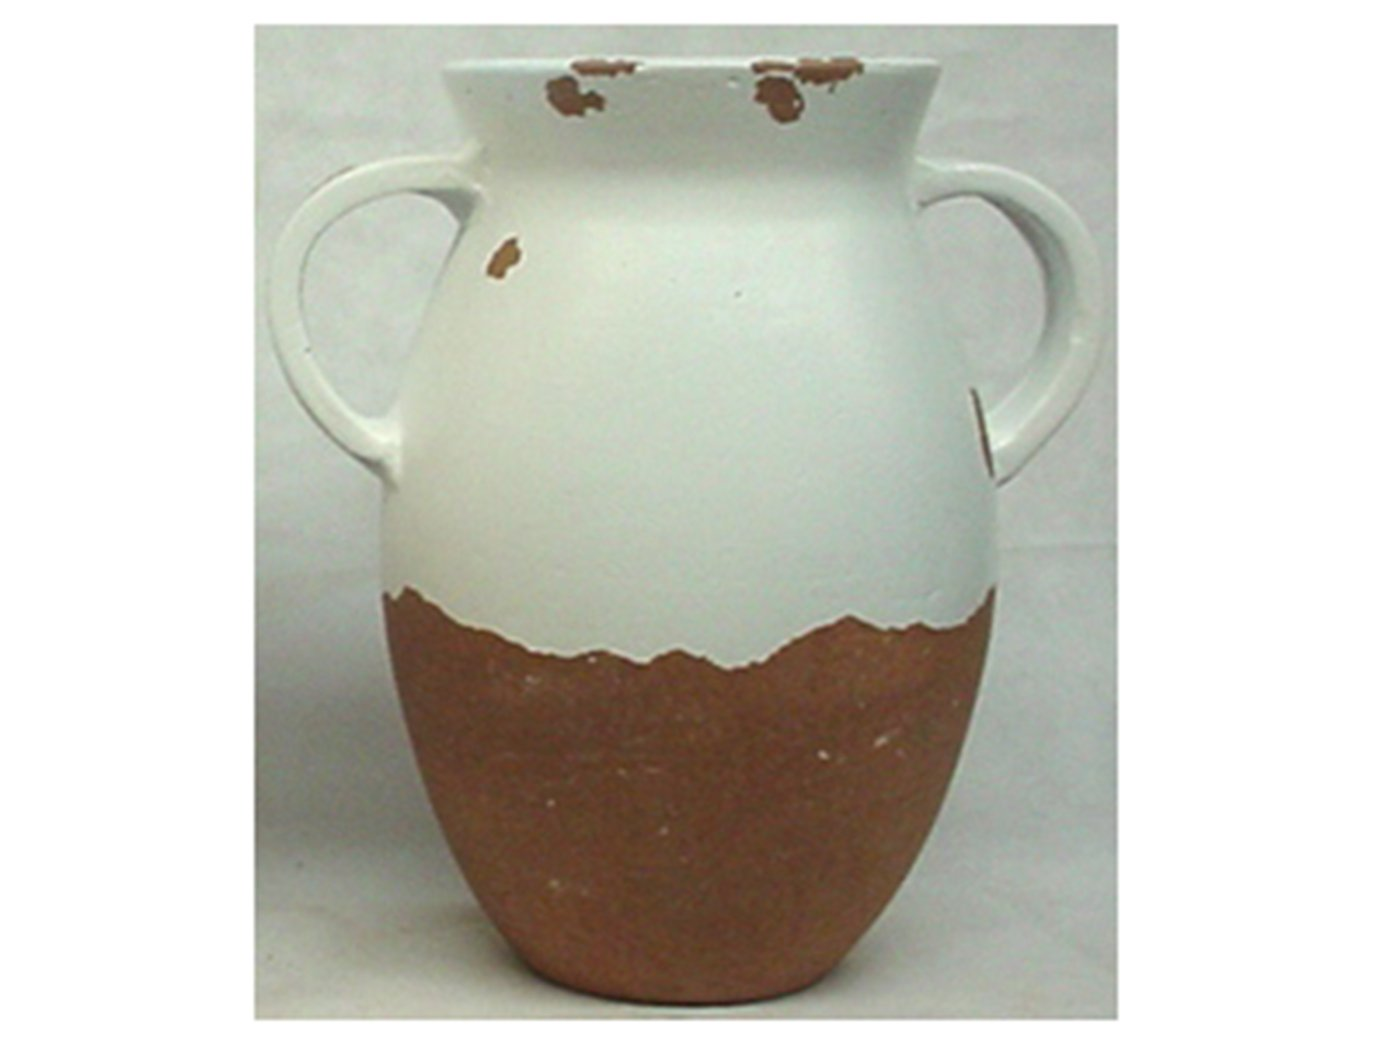 "Medium White & Brown Handled Vase 10""W x 15""H"